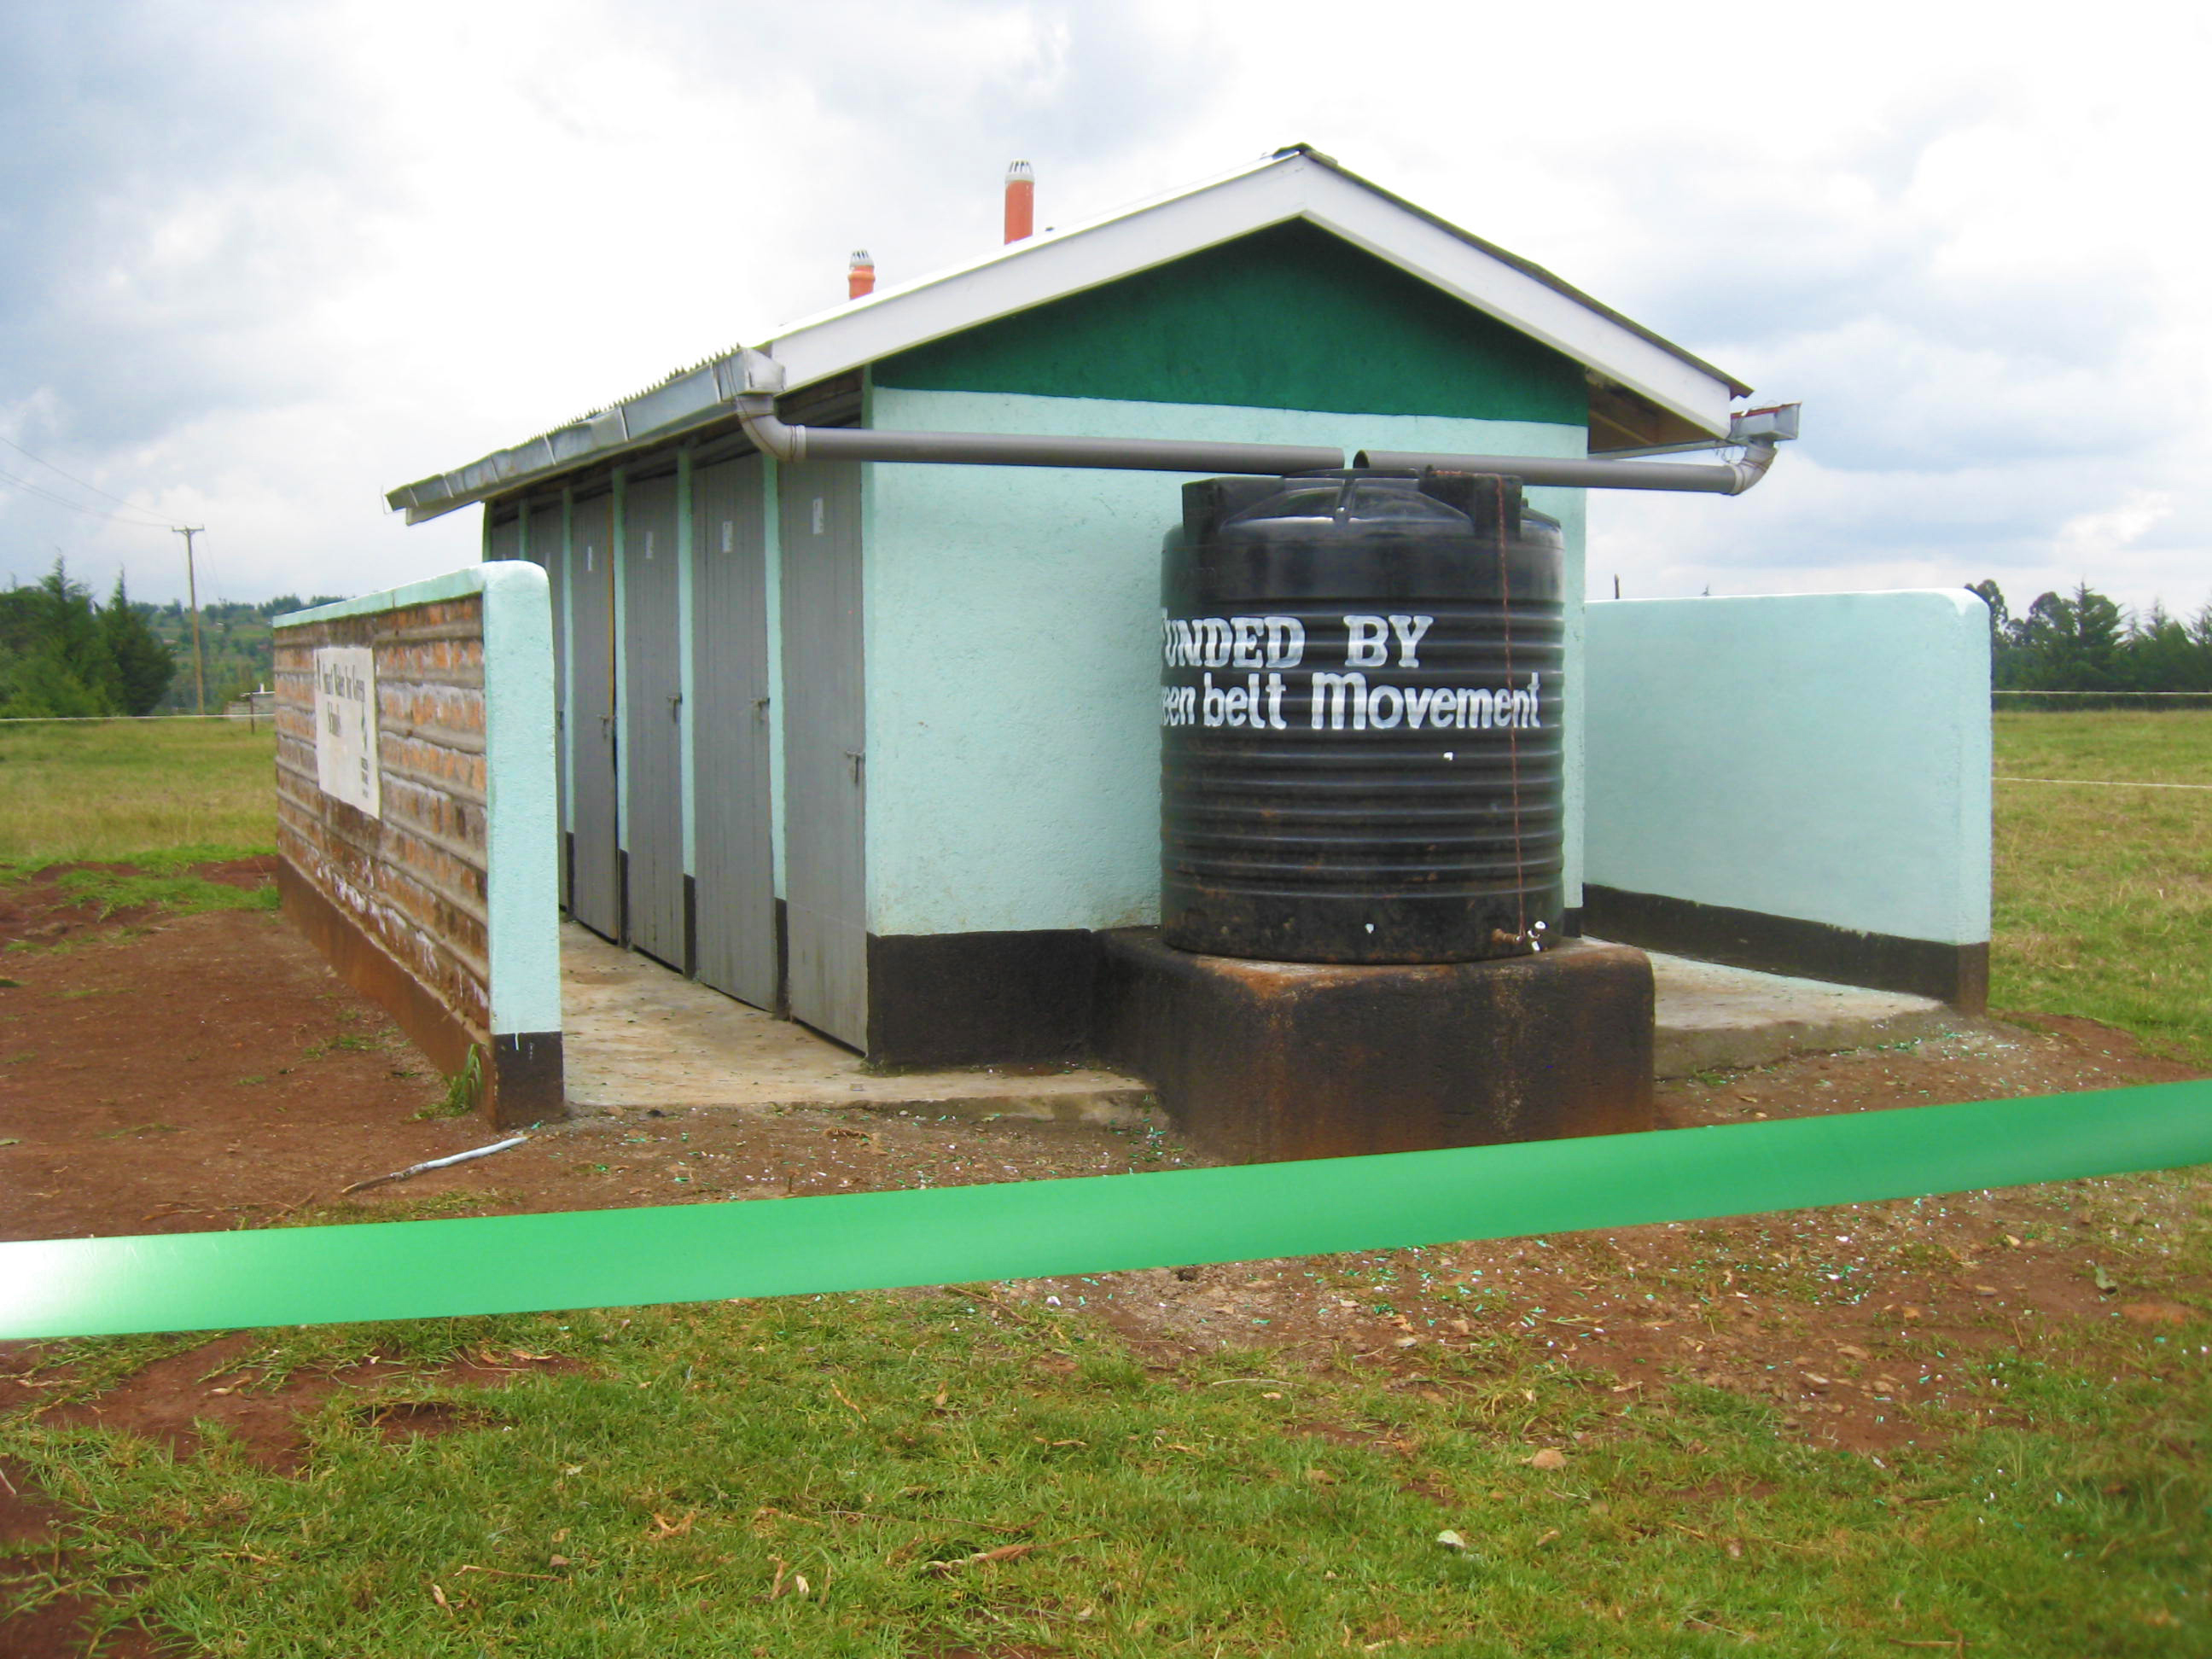 One of the toilet blocks